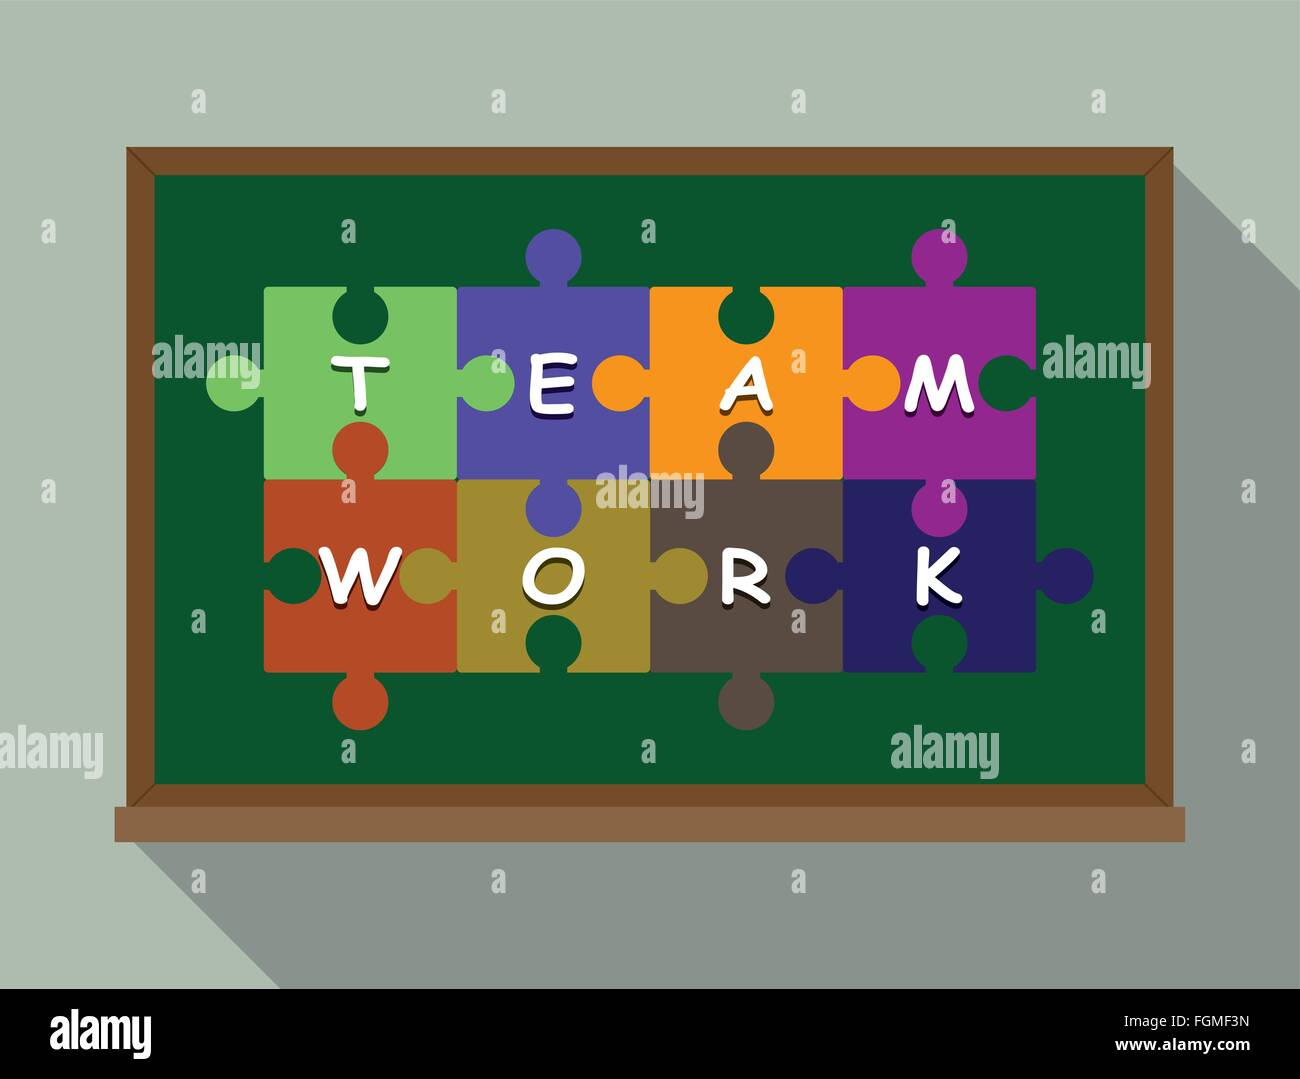 team work concept puzzle - Stock Image